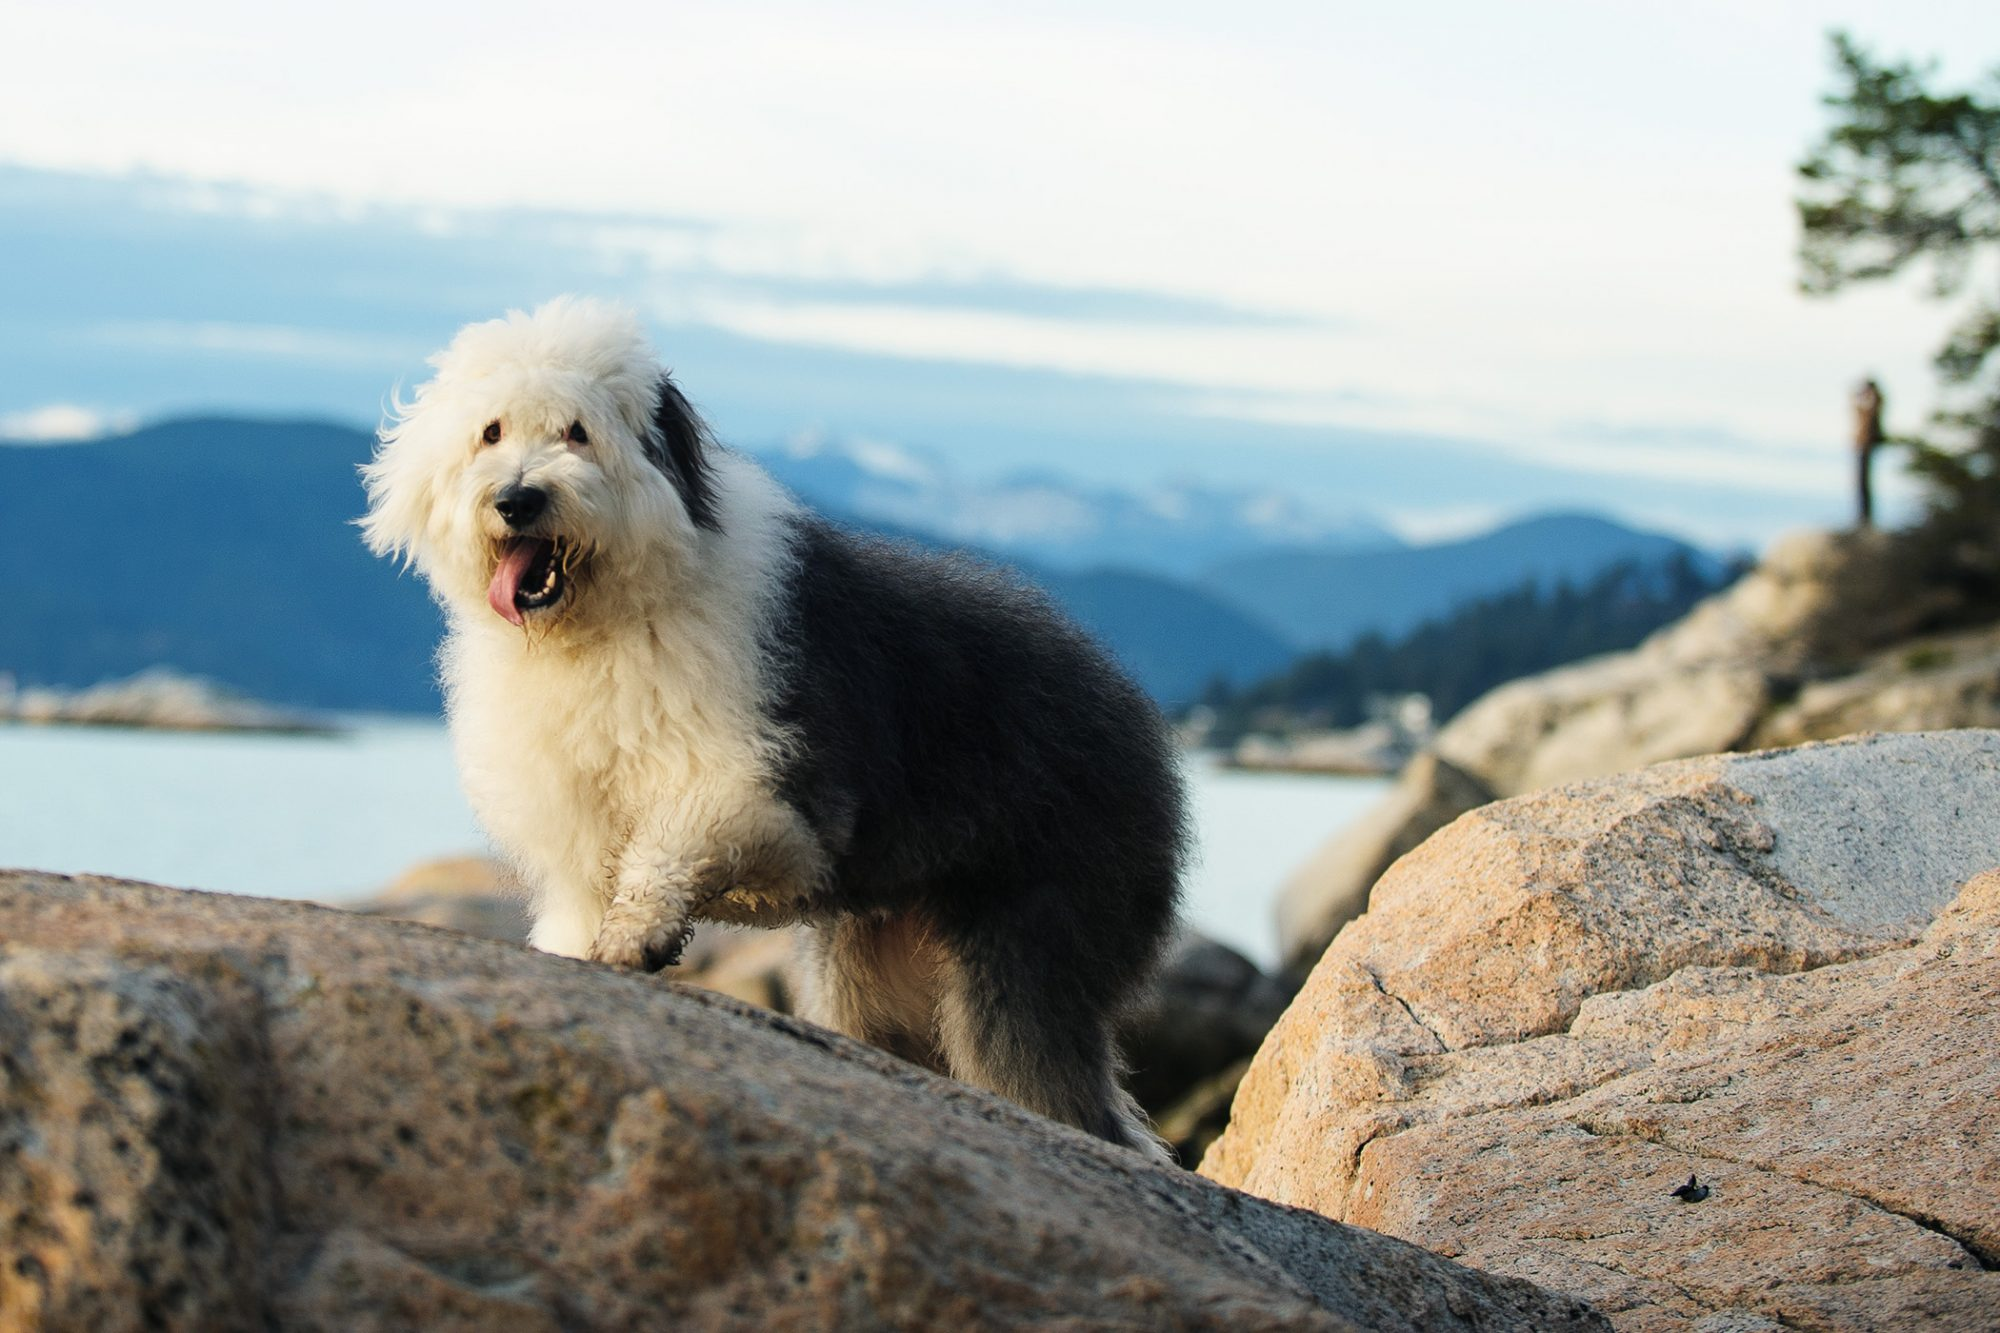 Picture of old English sheepdog walking on boulders